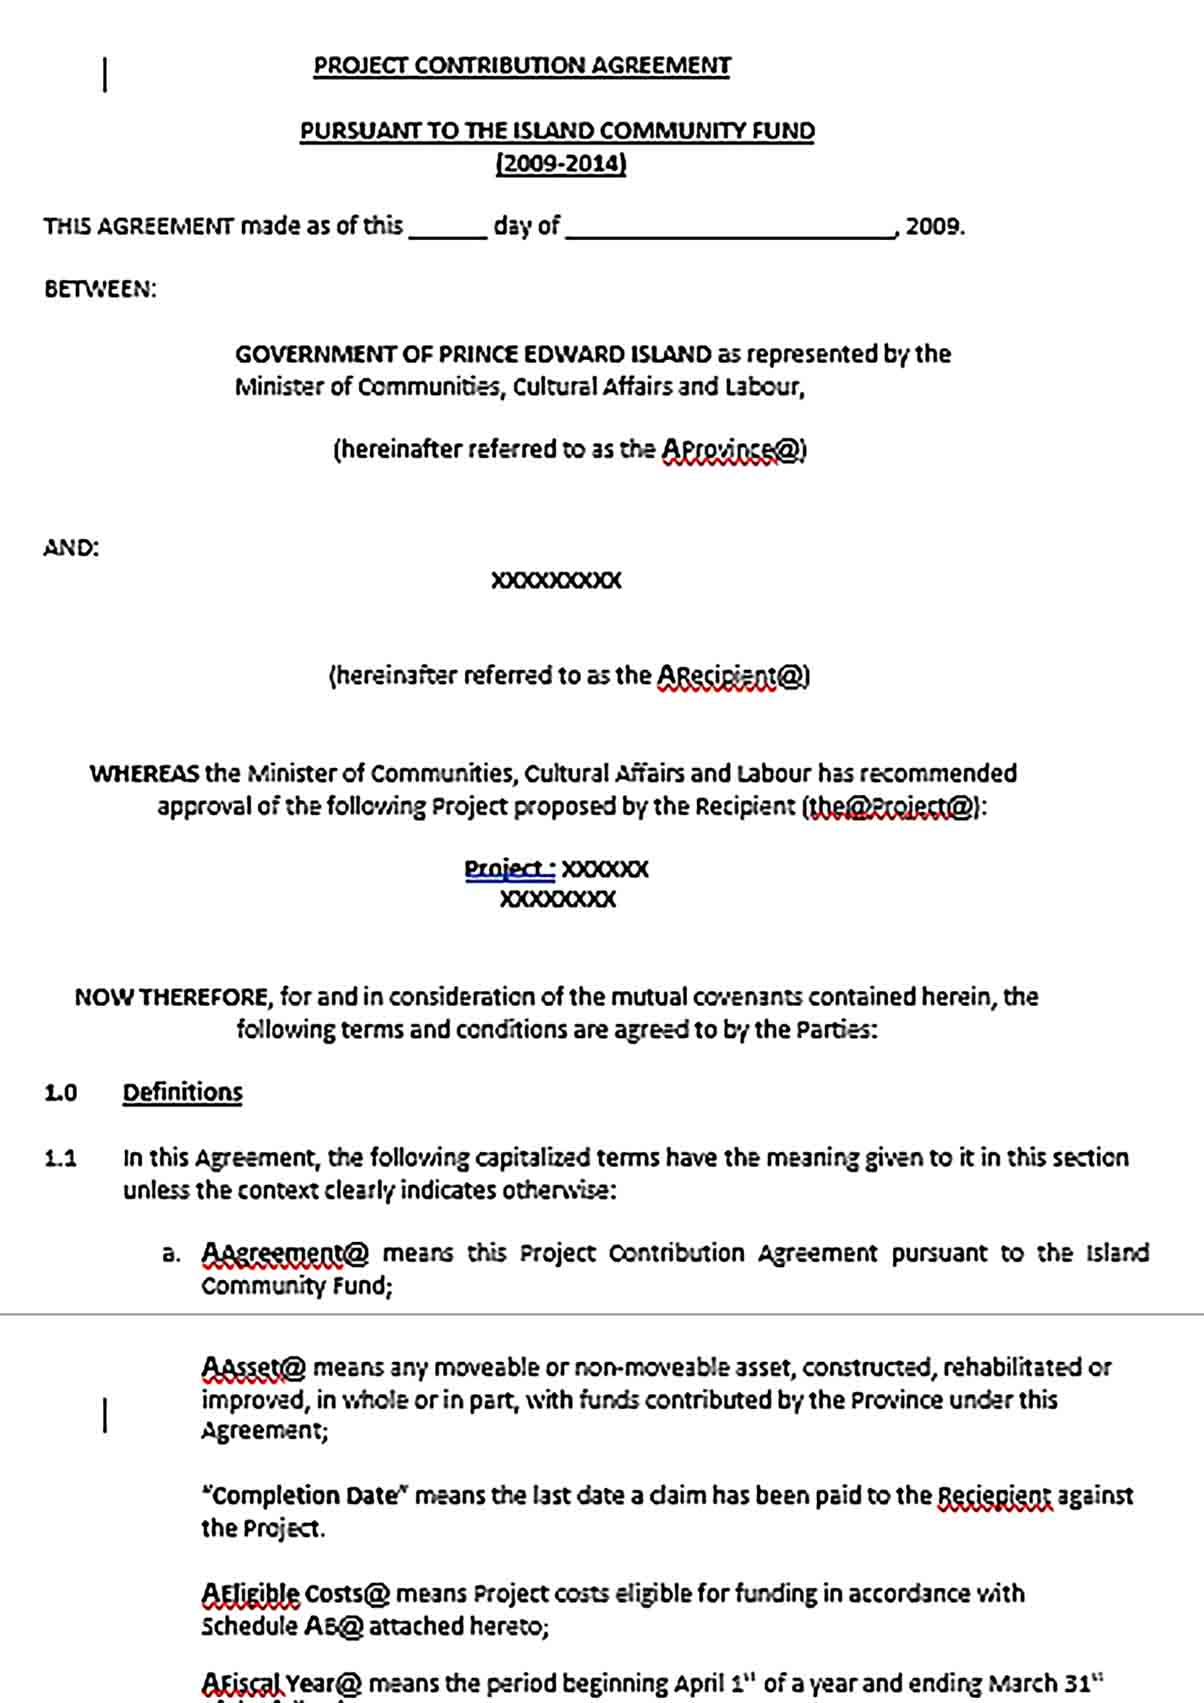 Sample Project Contribution Agreement